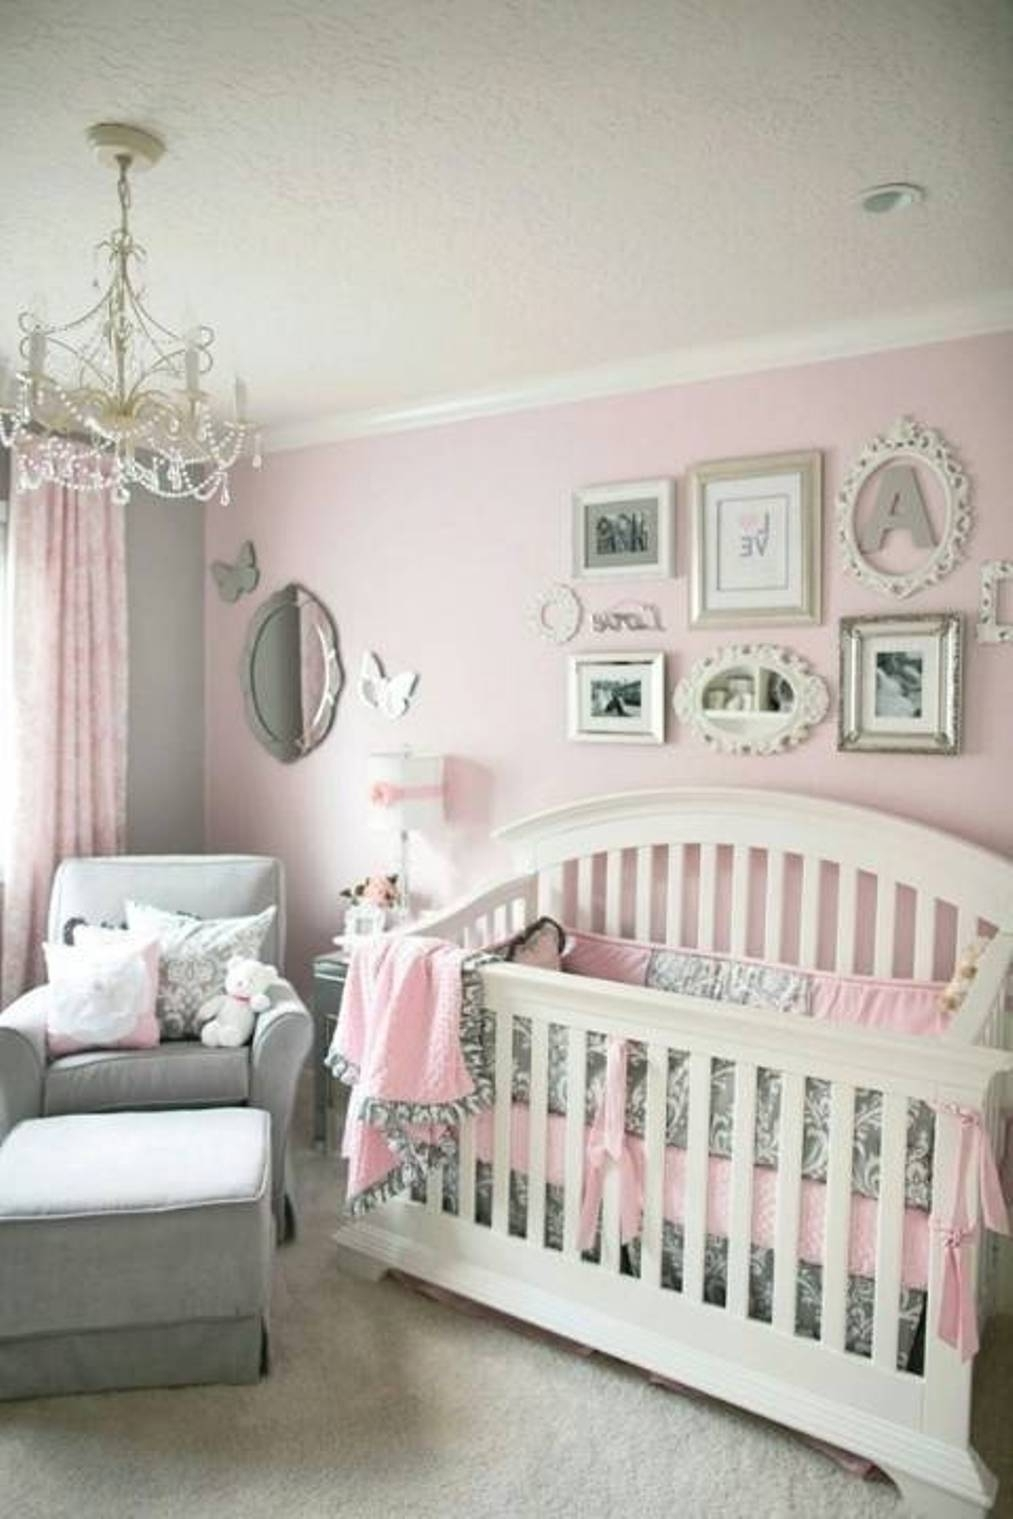 Decorating Ideas For Baby Girl Nursery – Wall Decor | Editeestrela With Most Popular Girl Nursery Wall Accents (Gallery 10 of 15)